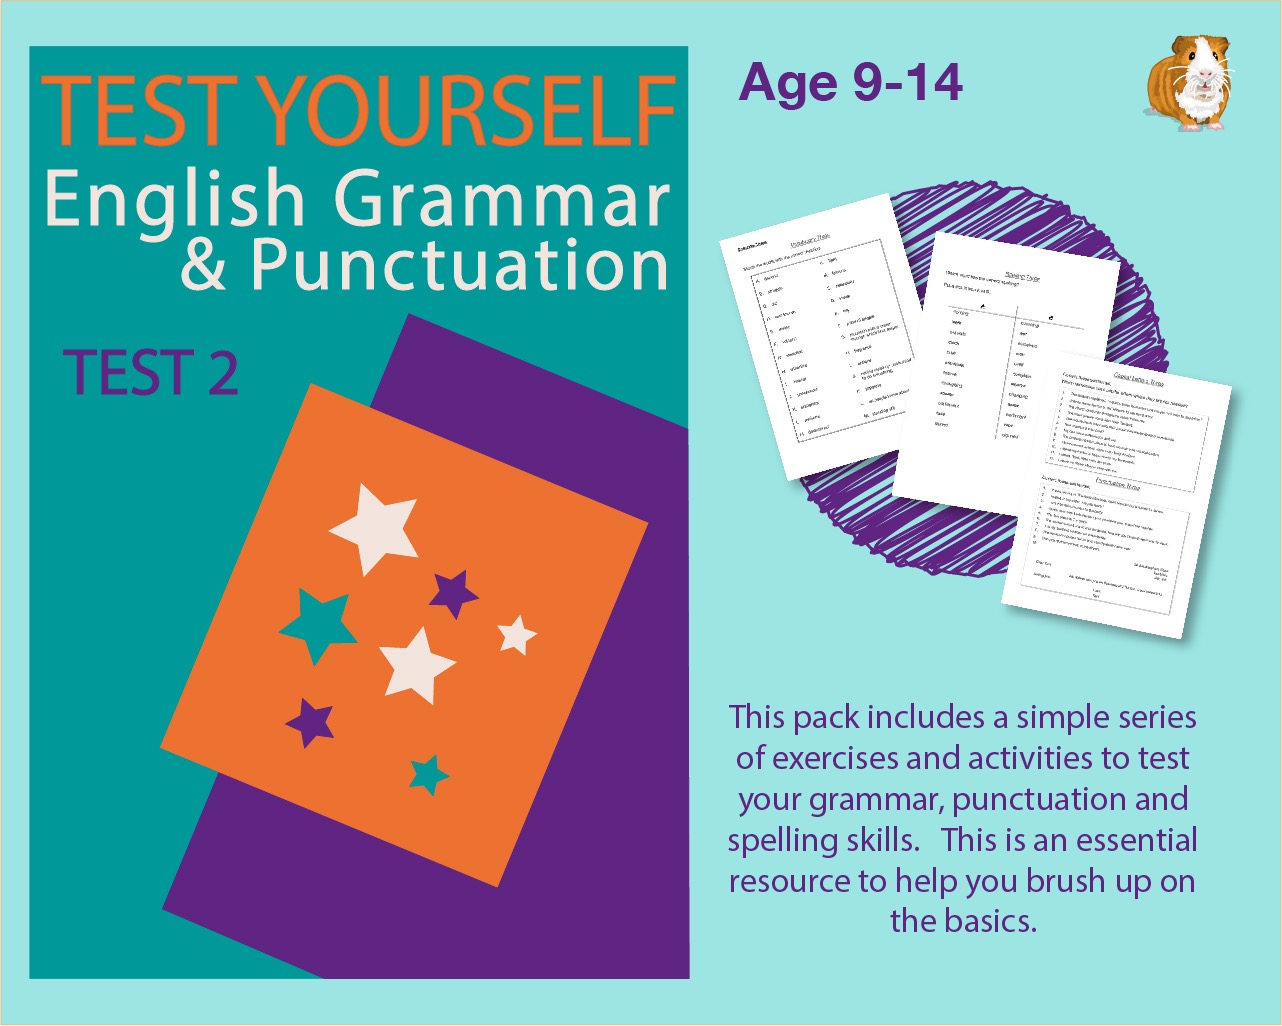 Assessment Test 2 (Test Your English Grammar And Punctuation Skills) 9-14 years